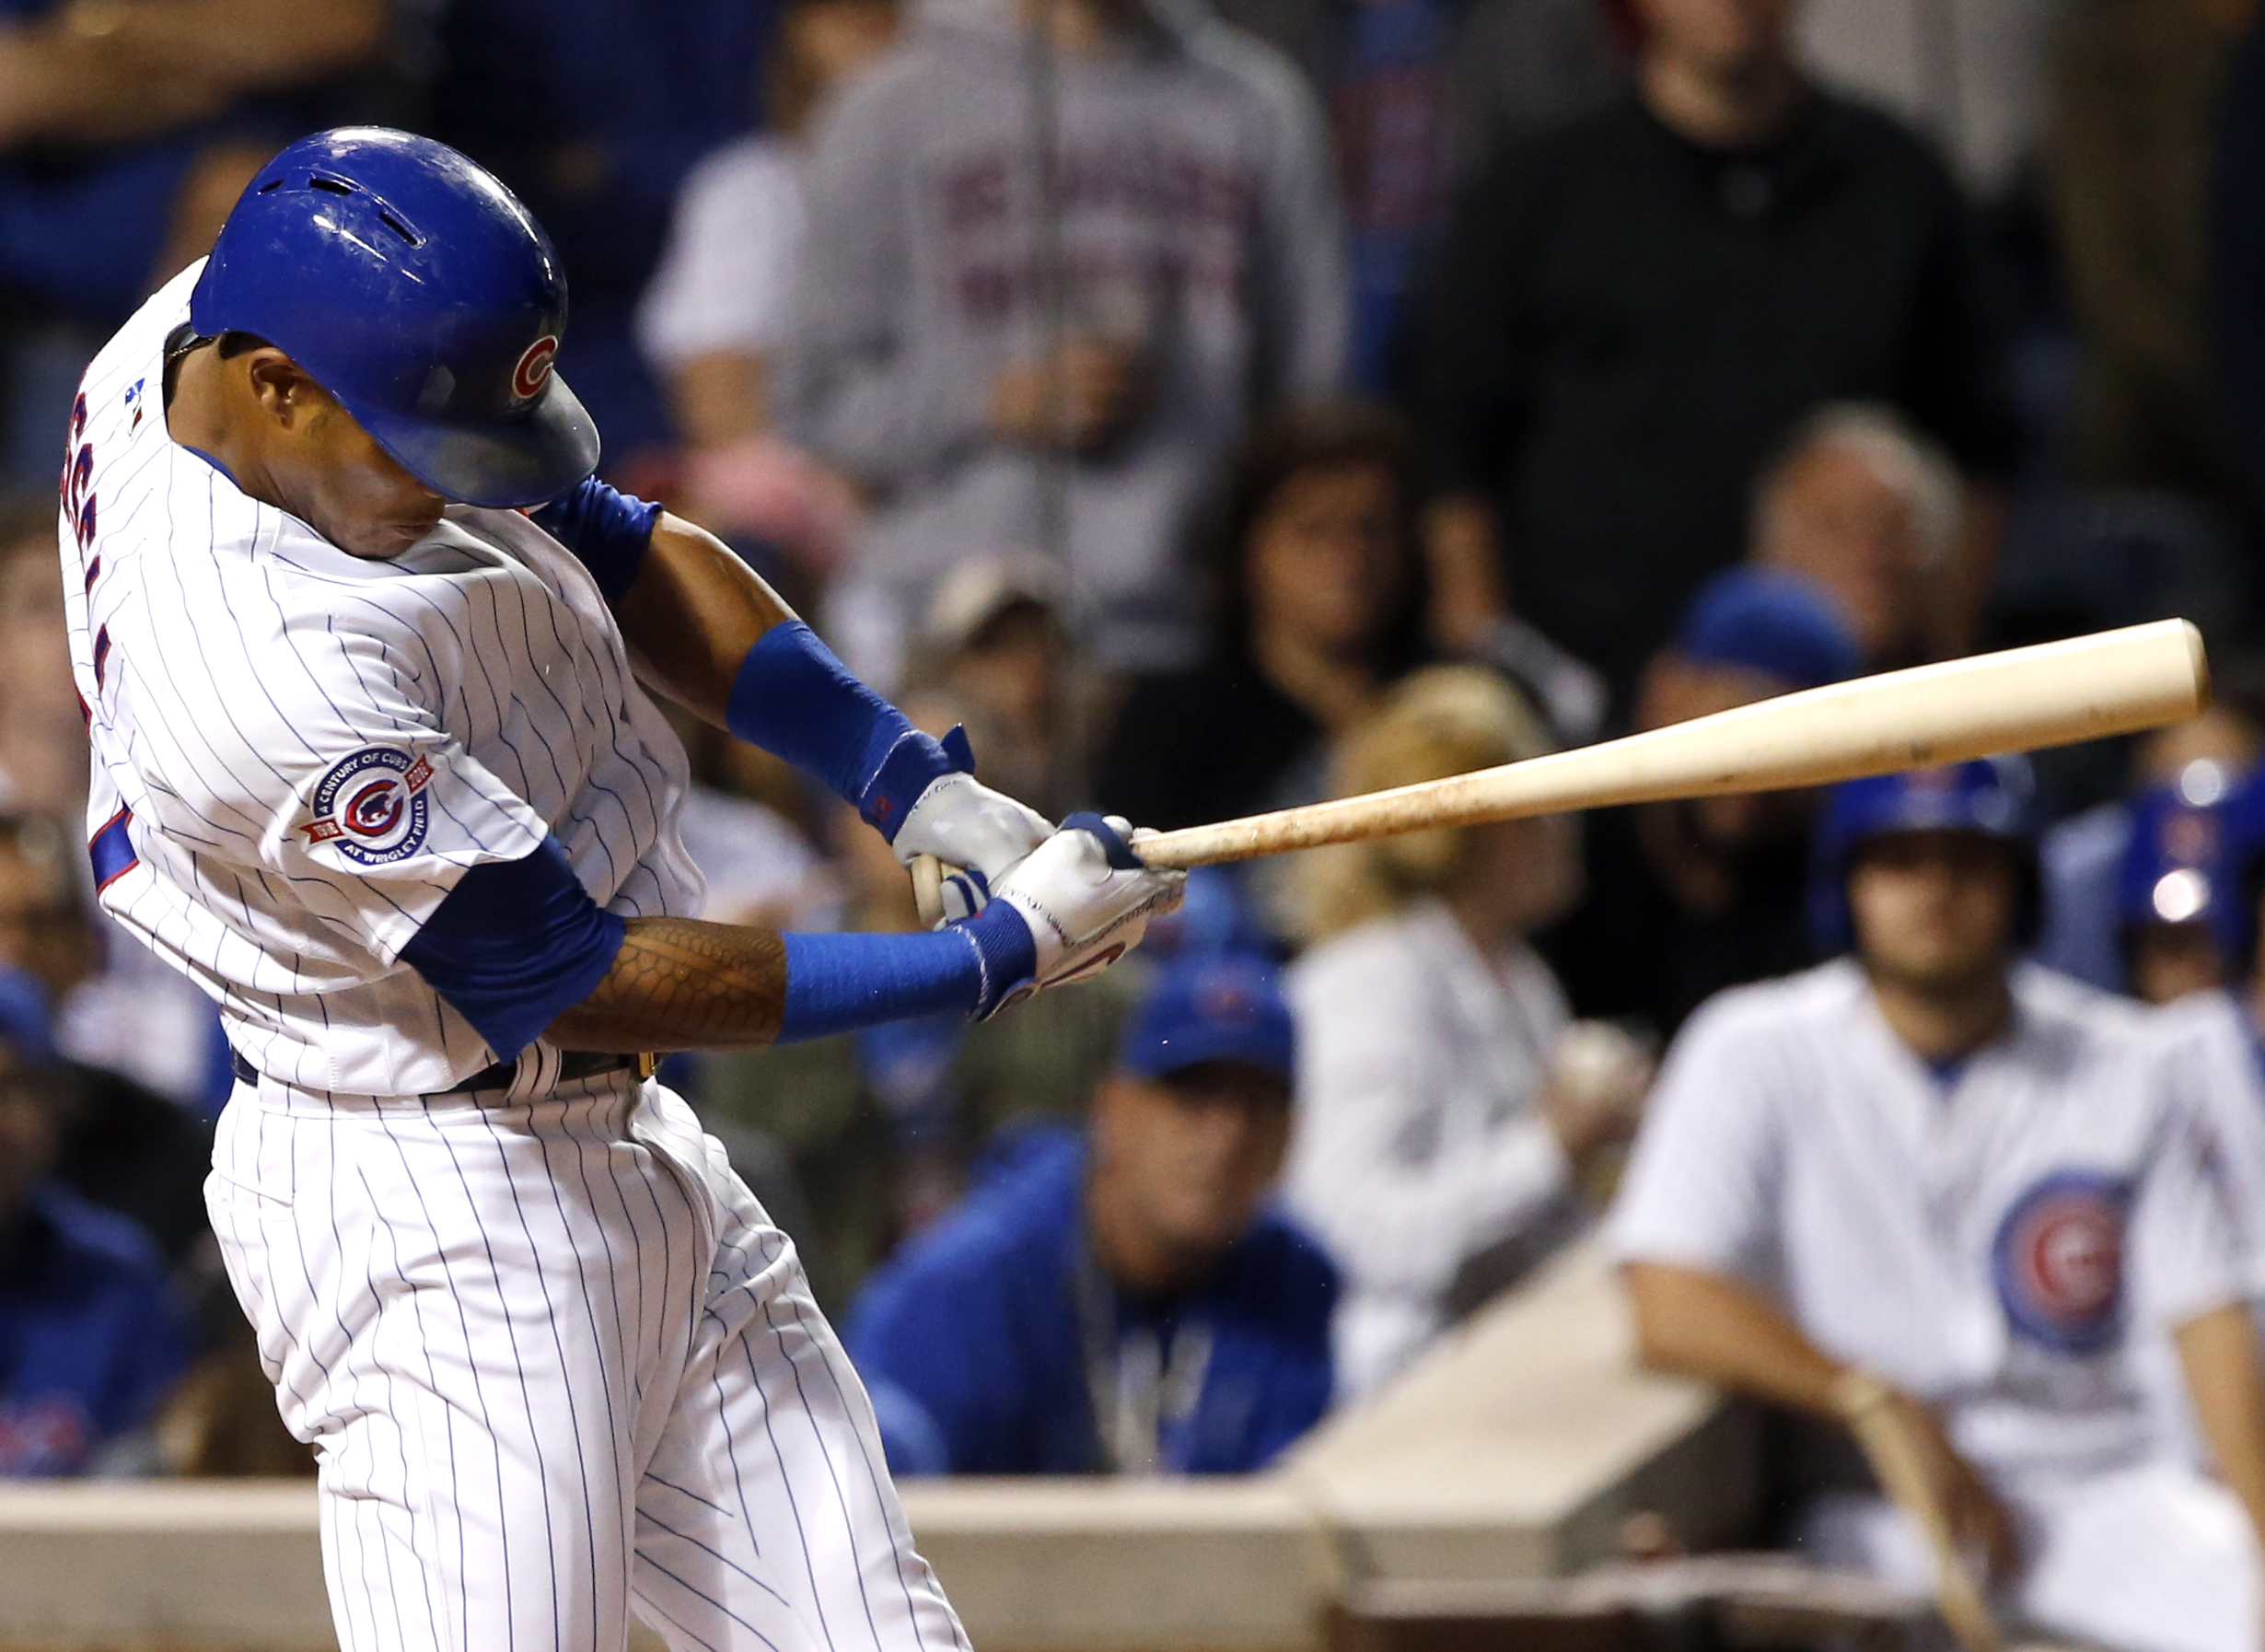 Chicago Cubs' Addison Russell hits a two-run single against the San Francisco Giants during the seventh inning of a baseball game Thursday, Sept. 1, 2016, in Chicago. (AP Photo/Nam Y. Huh)